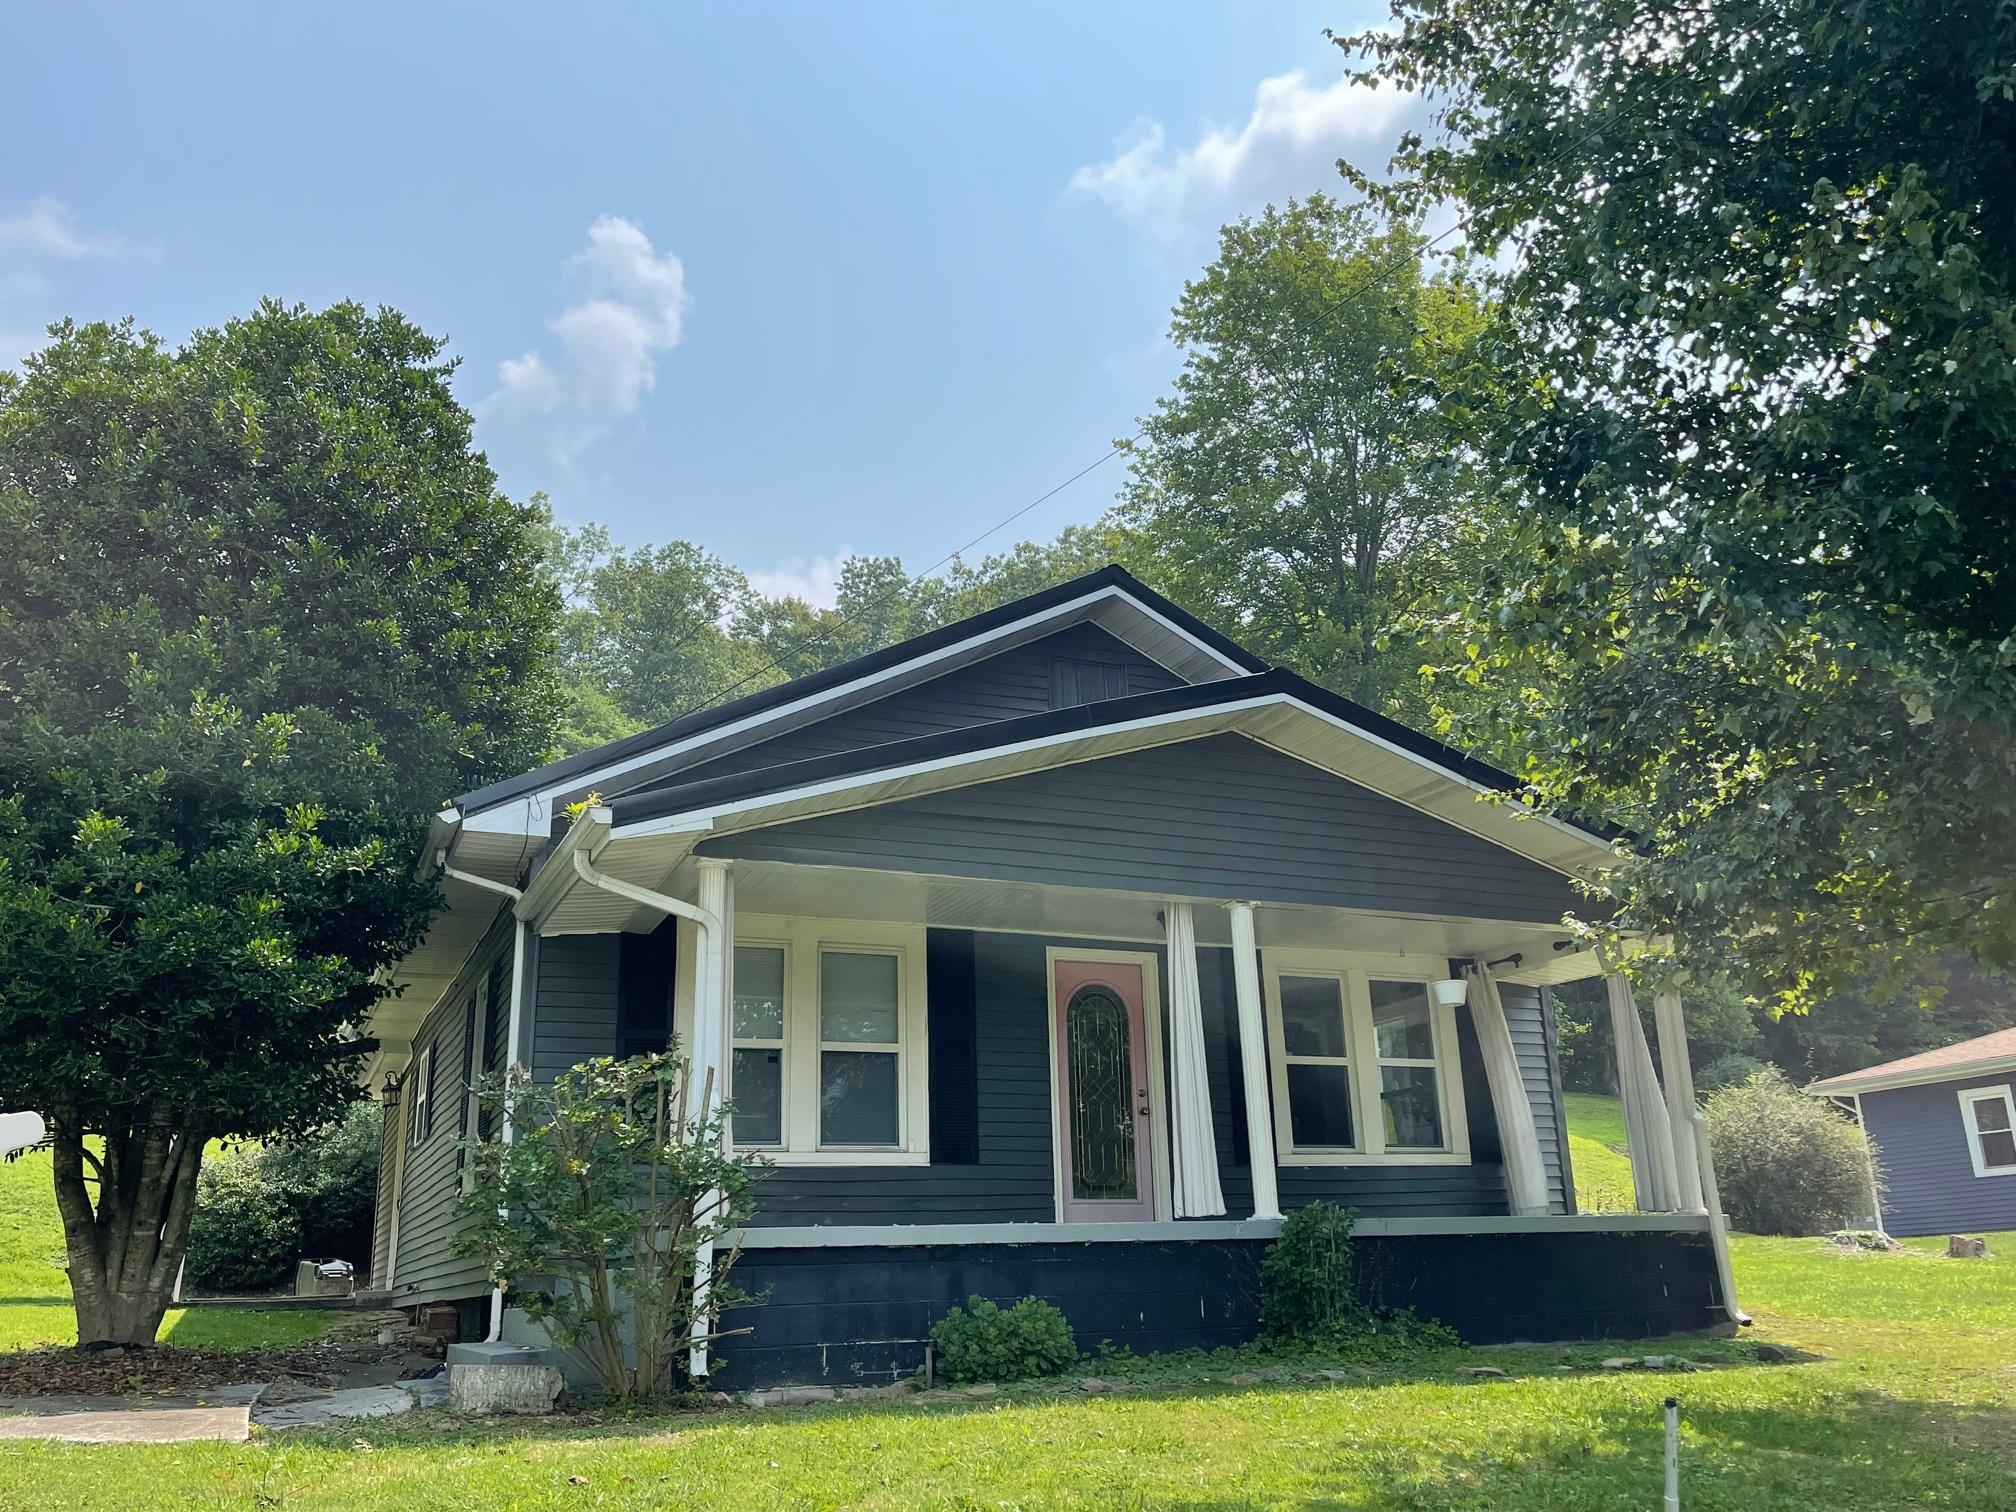 729 S KY 11, Barbourville, KY 40906